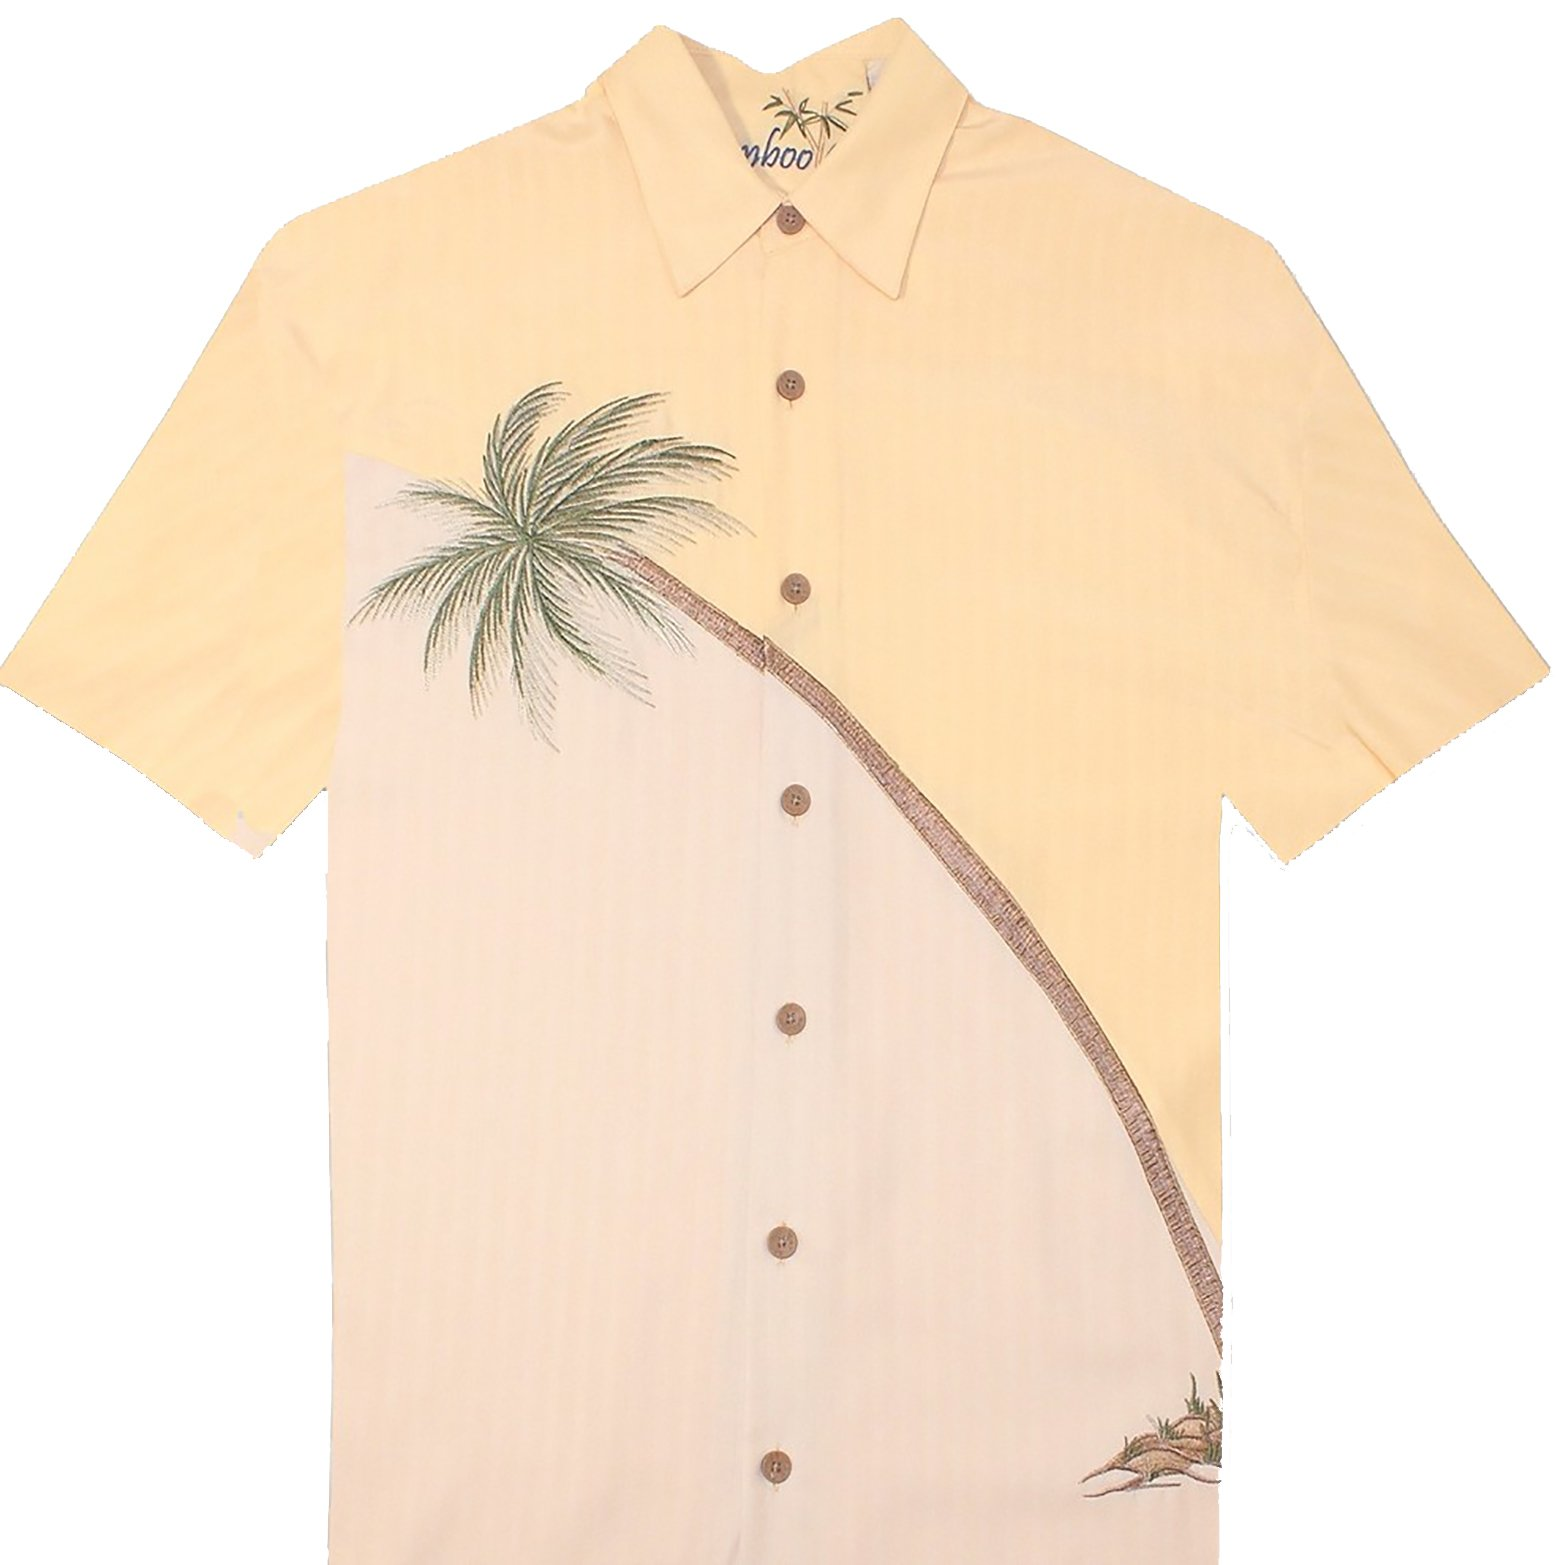 Bamboo Cay Men's Hurricane Palm, Embroidered Tropical Camp Shirt (XL, Banana)